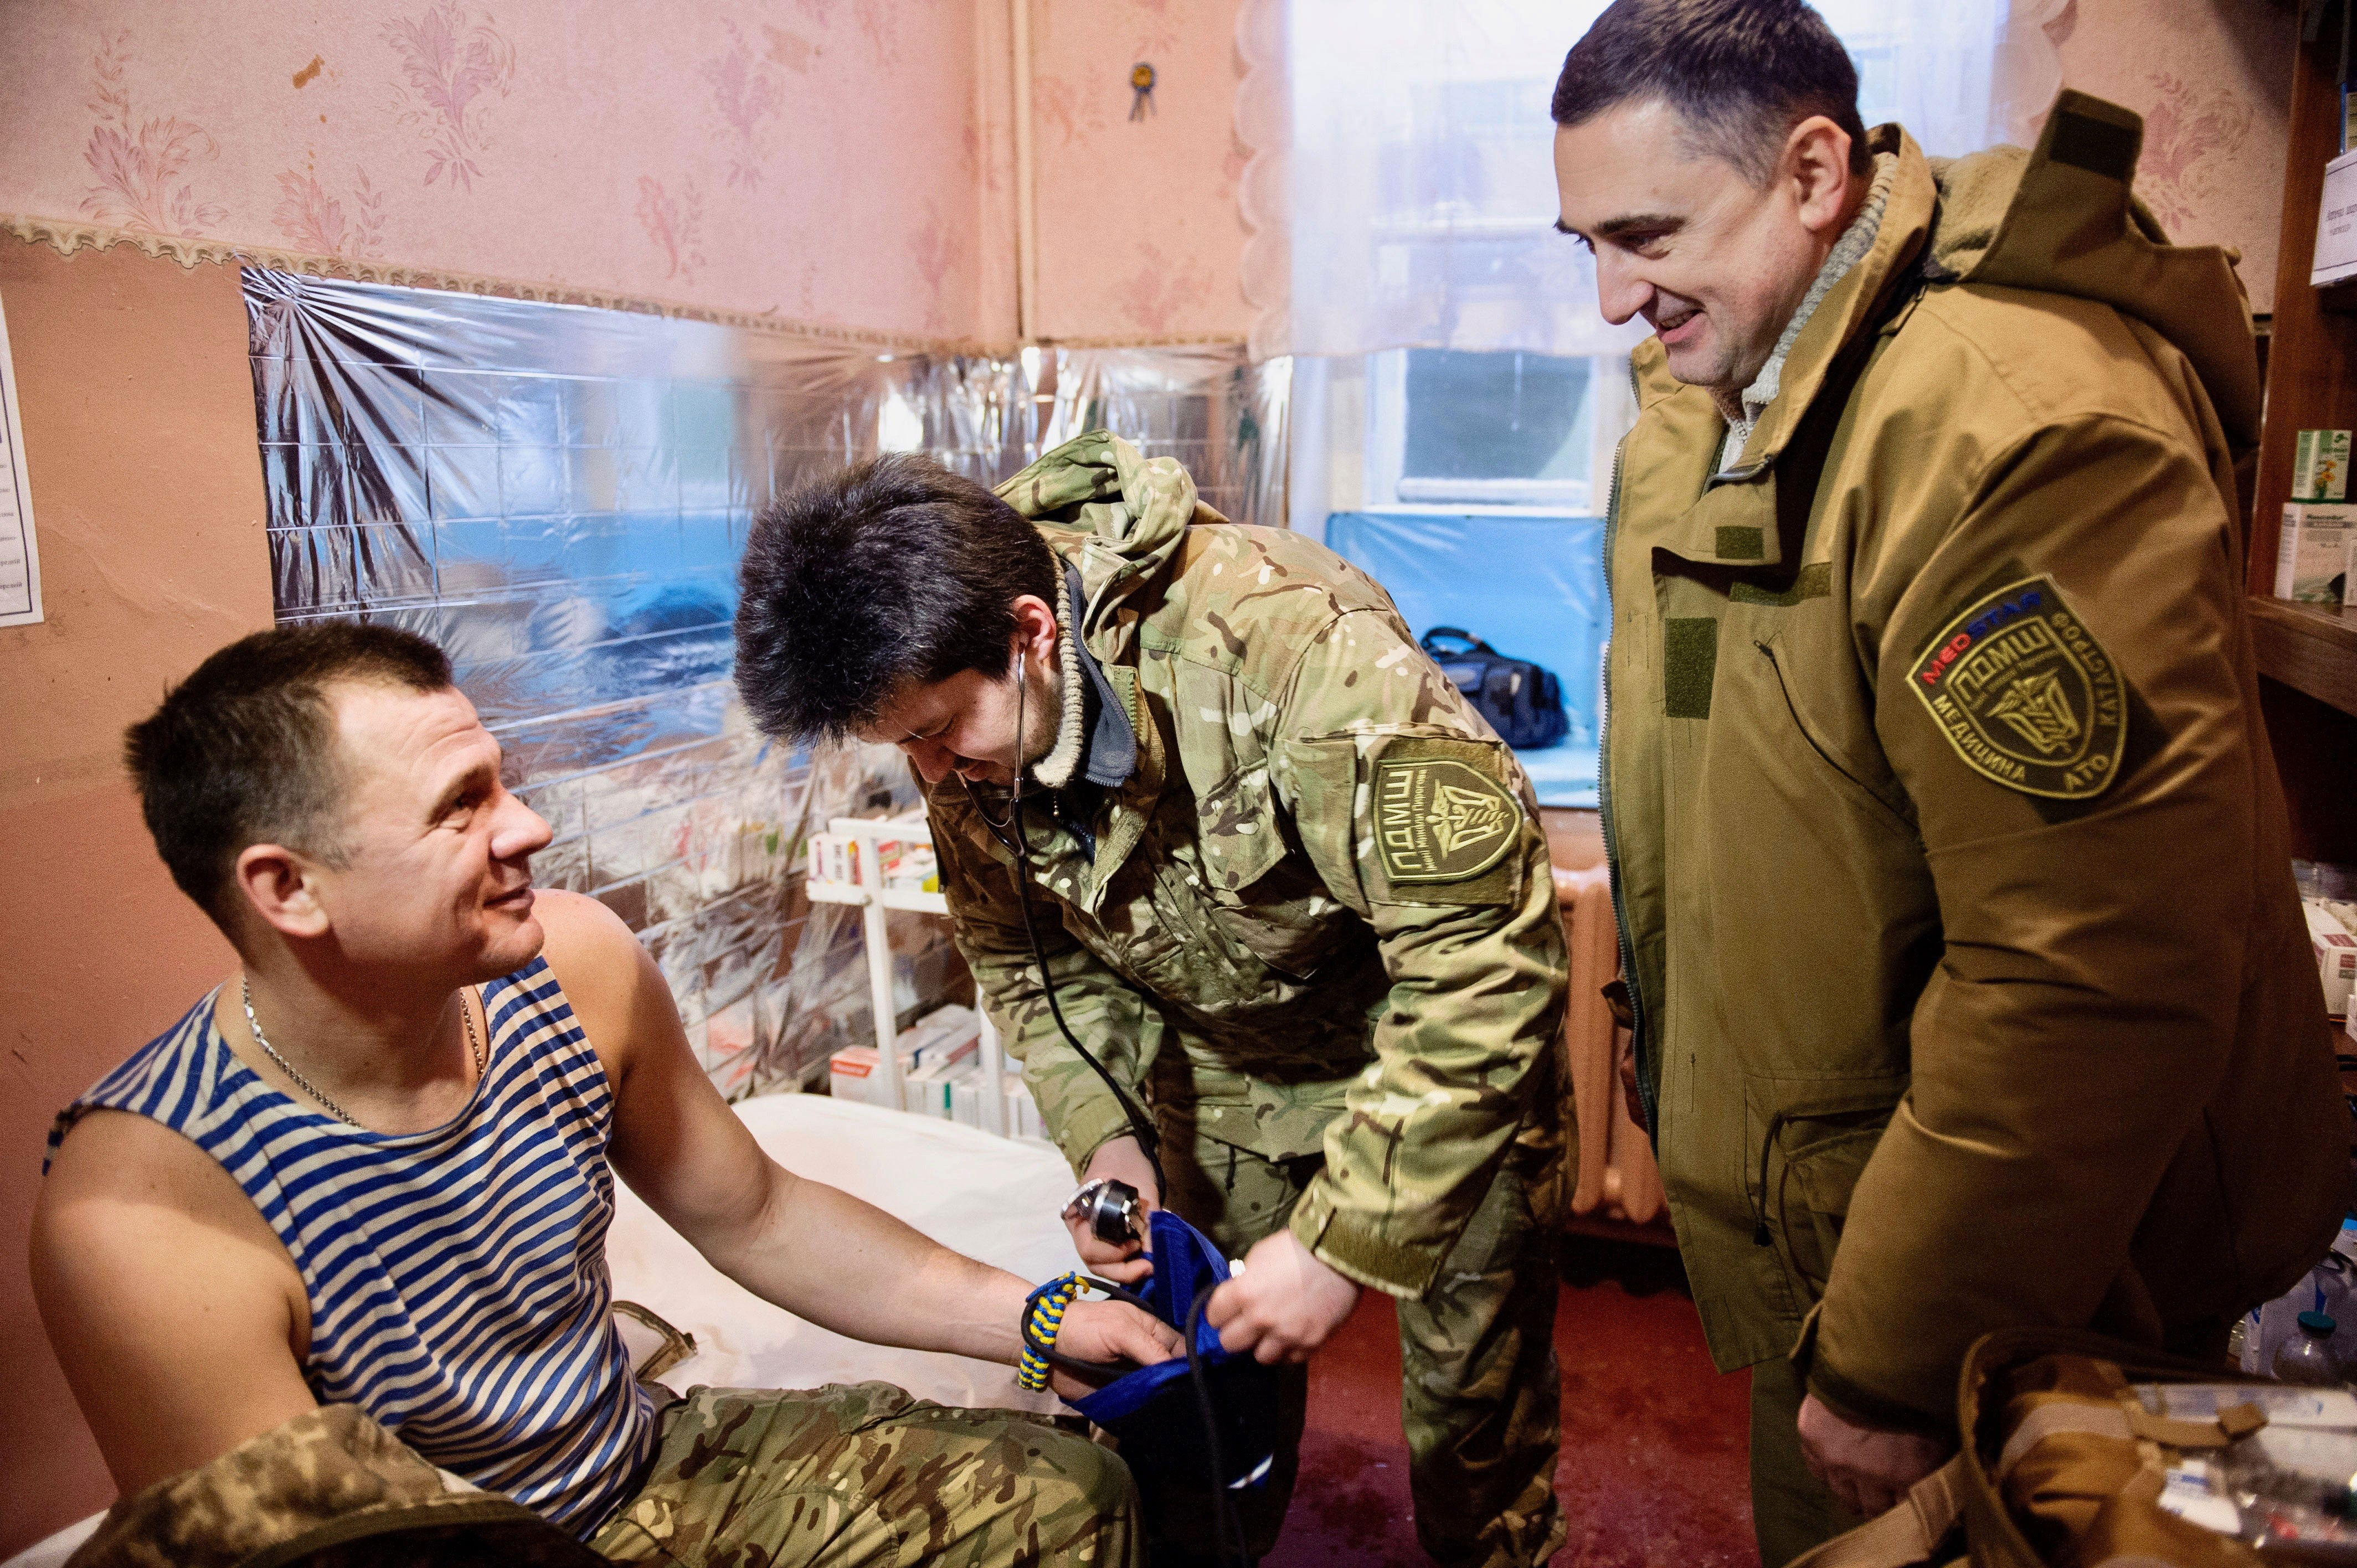 Oleg Zinevych, right, and Pavlo Orynchak, center, treat a Ukrainian soldier in Volnovakha. (Photo: Olga Ivashchenko)